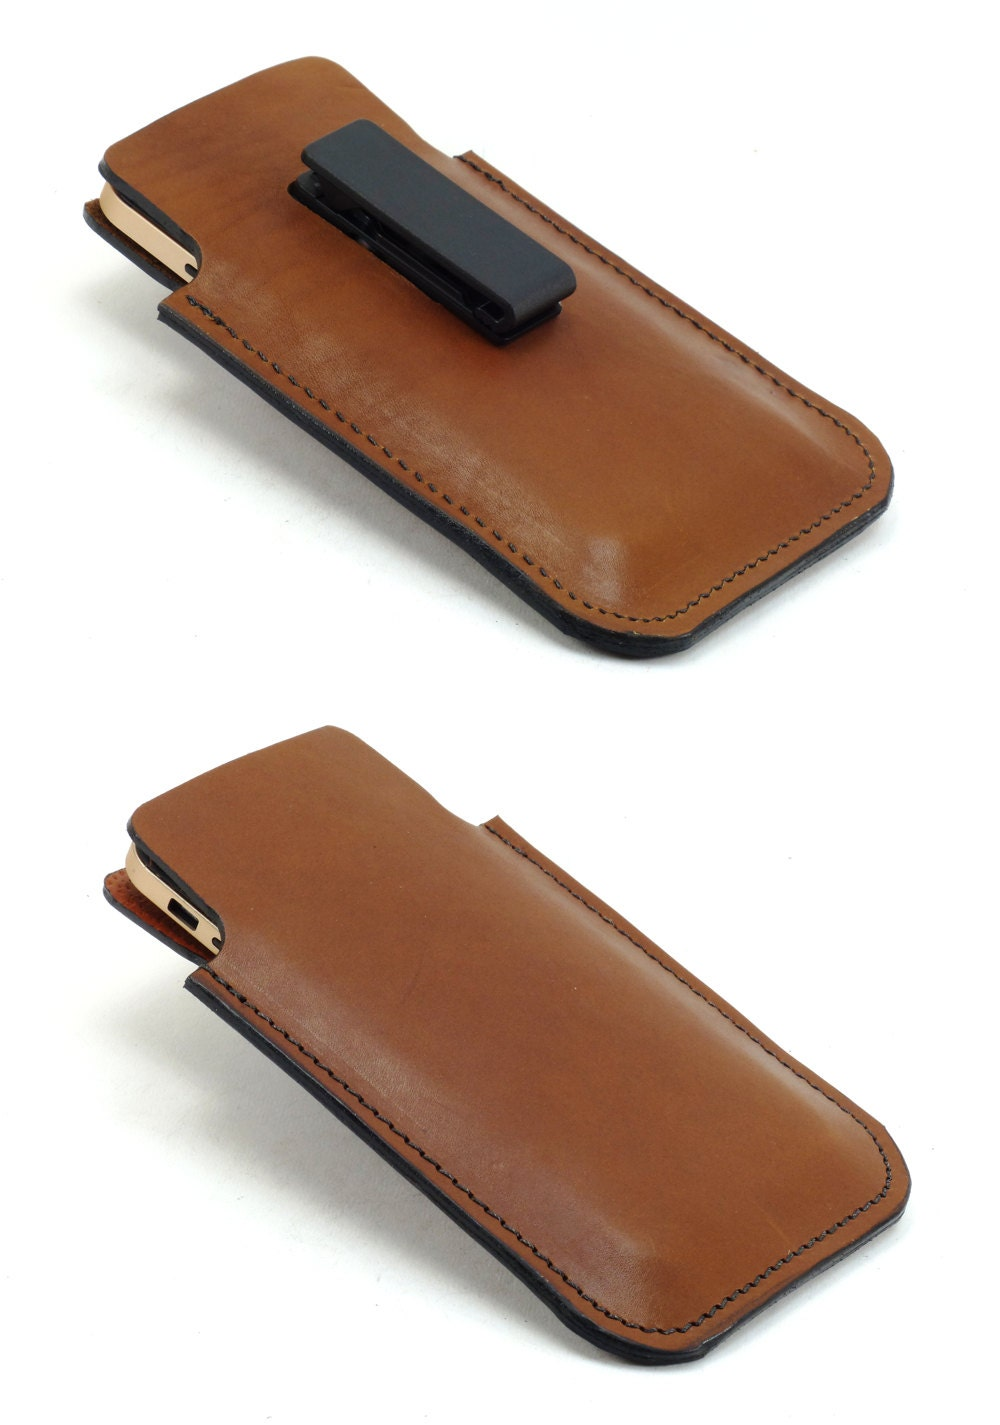 harness leather iphone 6 plus holster with rotating belt clip